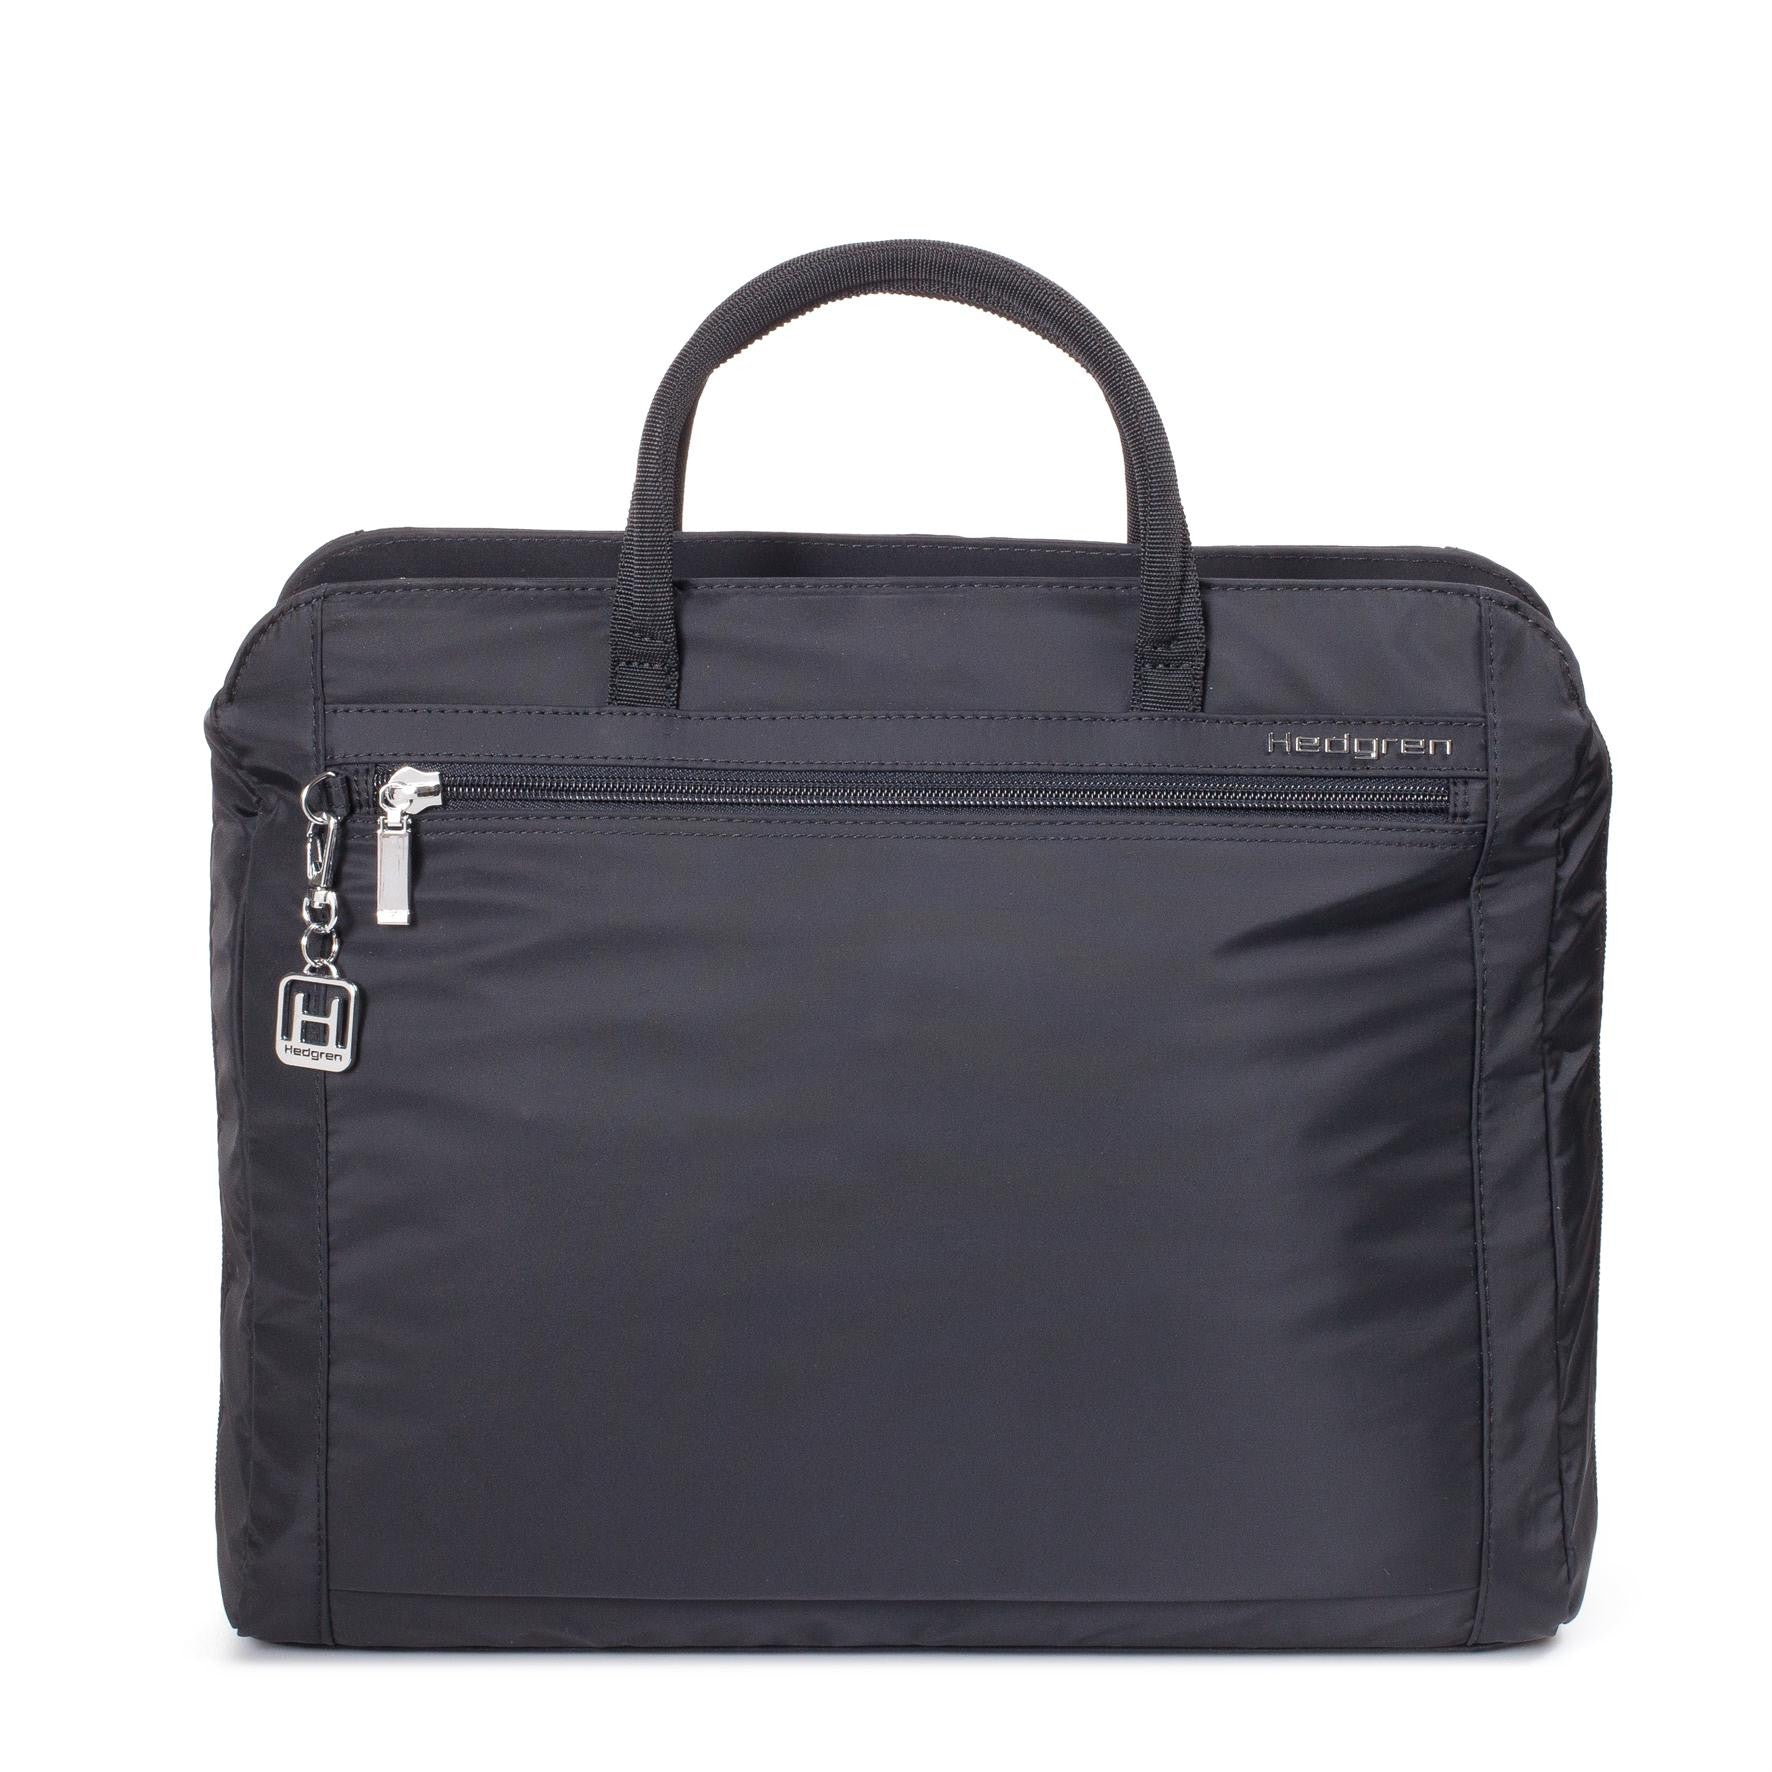 Essence - Hedgren Sac d'affaire 15''